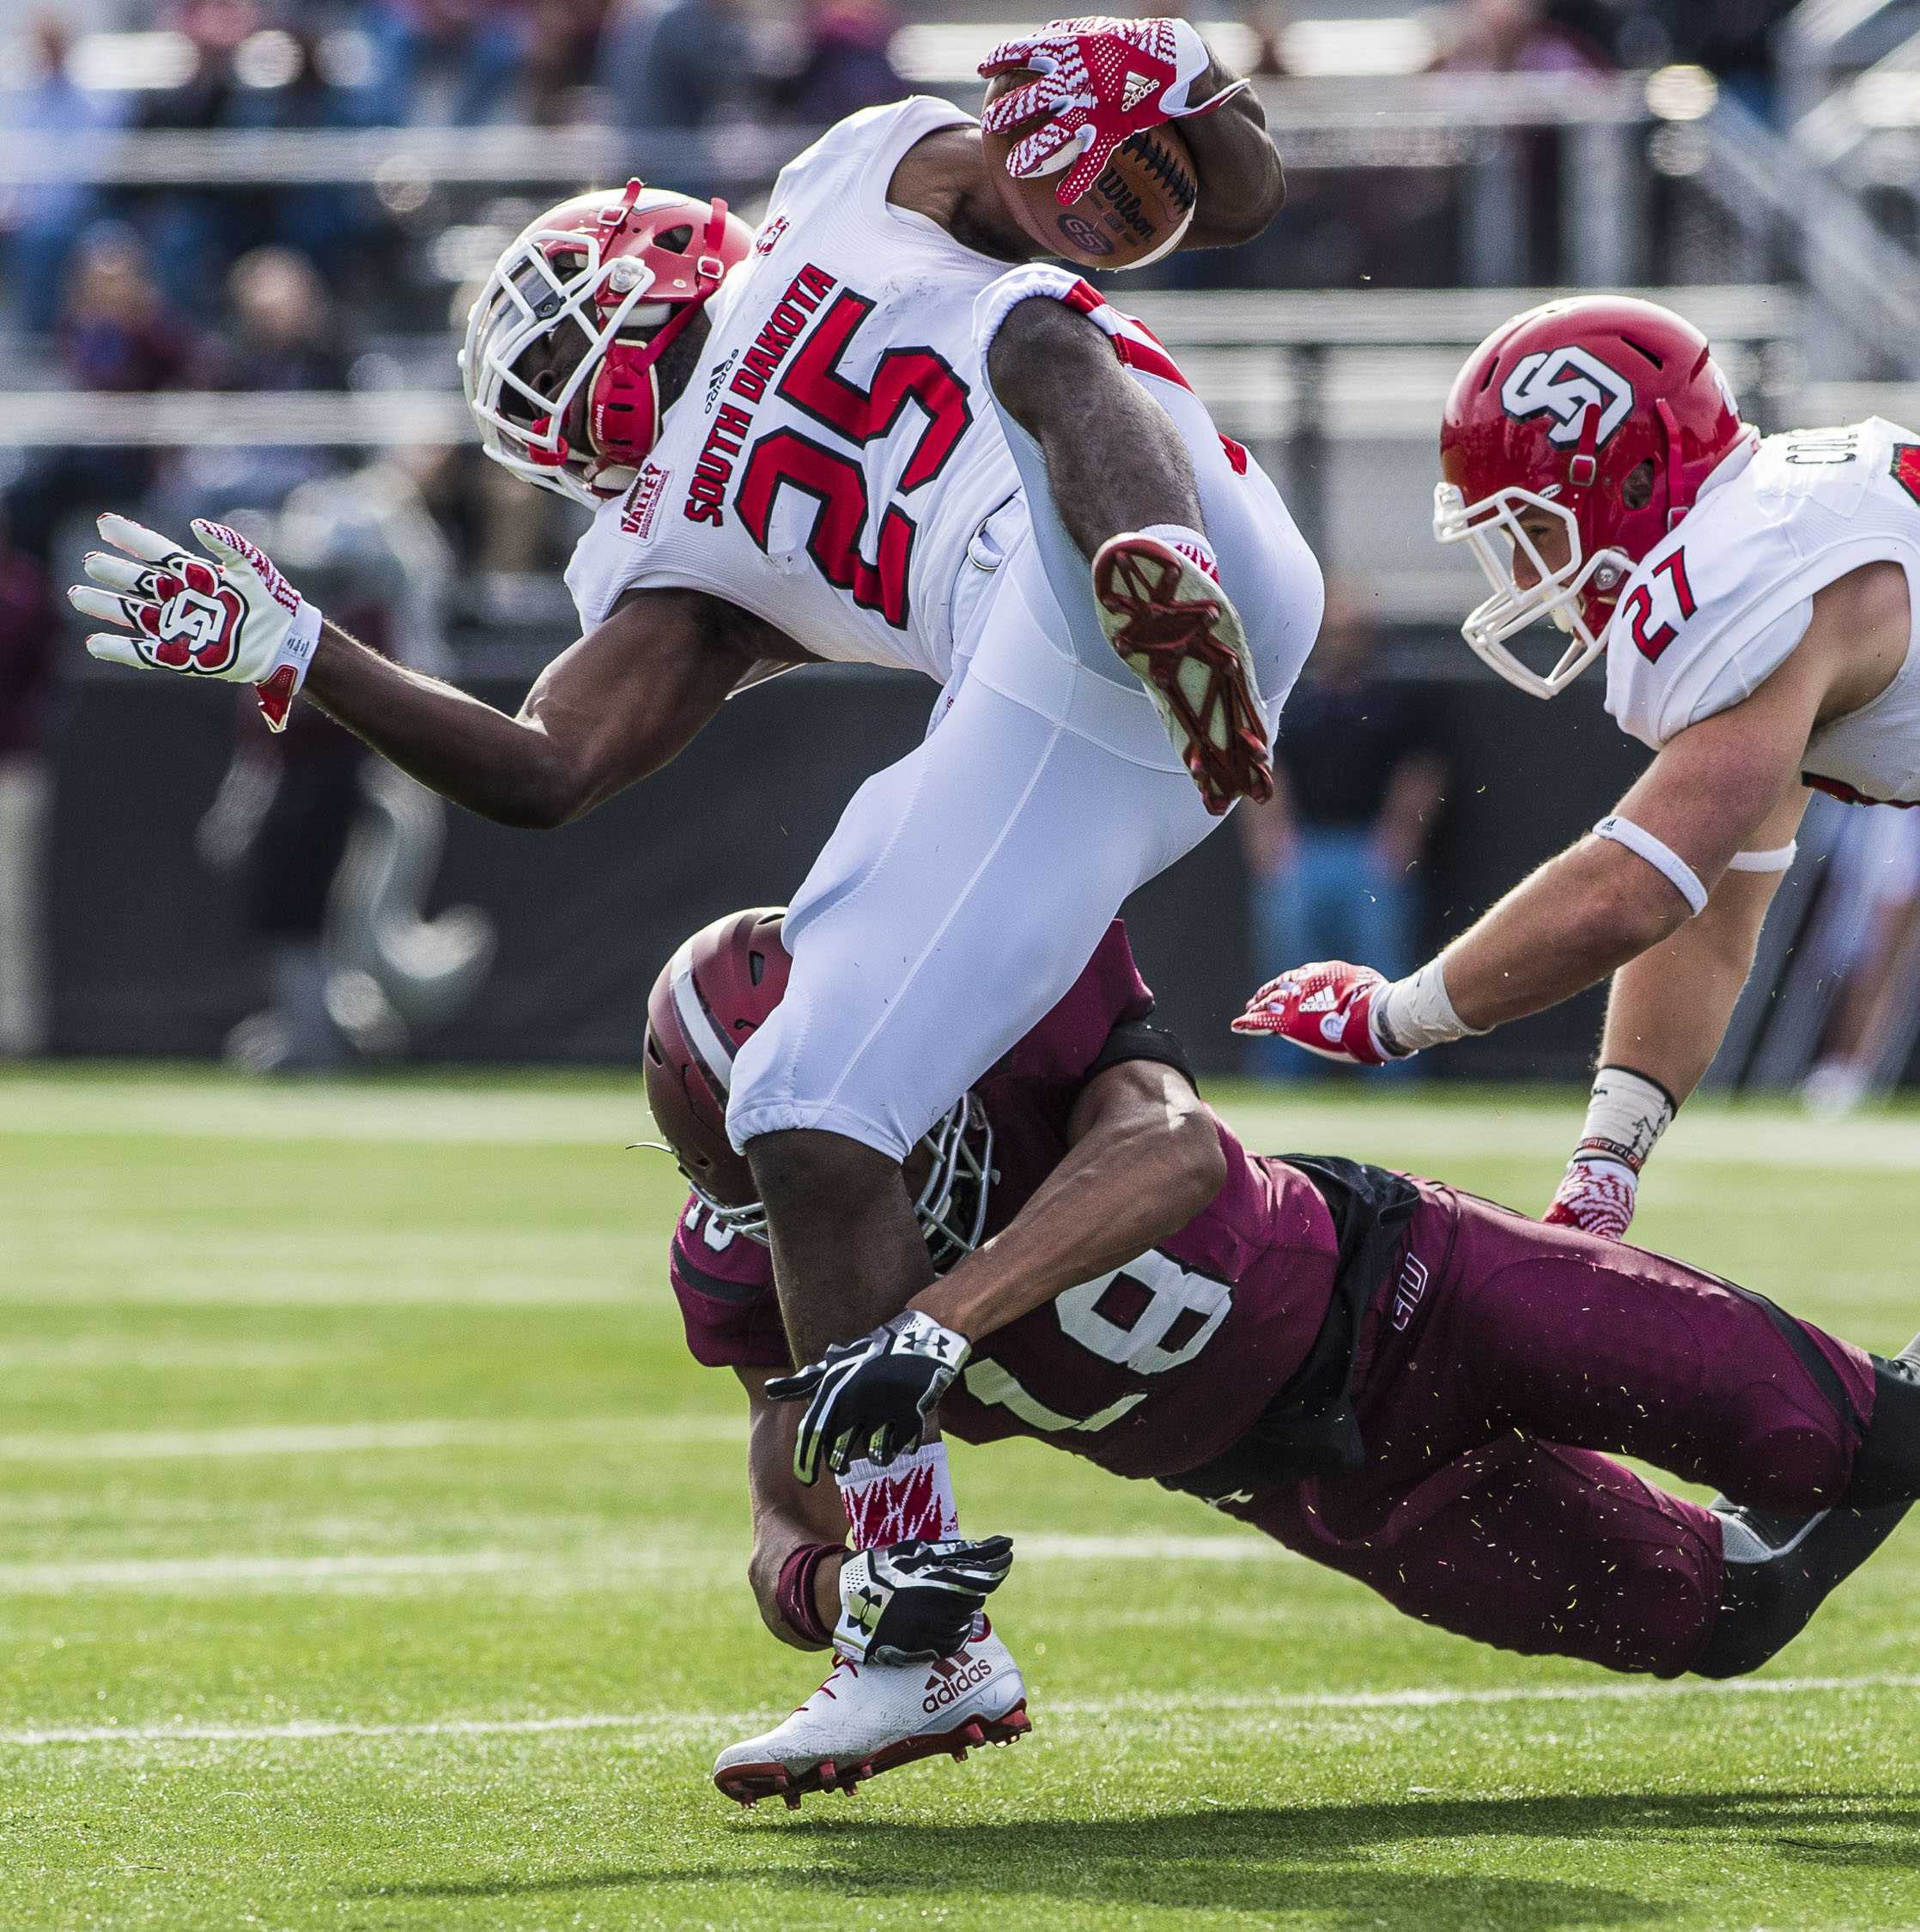 Freshman safety Jeremy Chinn (18) brings down Coyote sophomore running back Paul Anderson (25) on Saturday, Nov. 5, 2016, during the Salukis' 35-28 win against the University of South Dakota Coyotes at Saluki Stadium. (Ryan Michalesko | @photosbylesko)